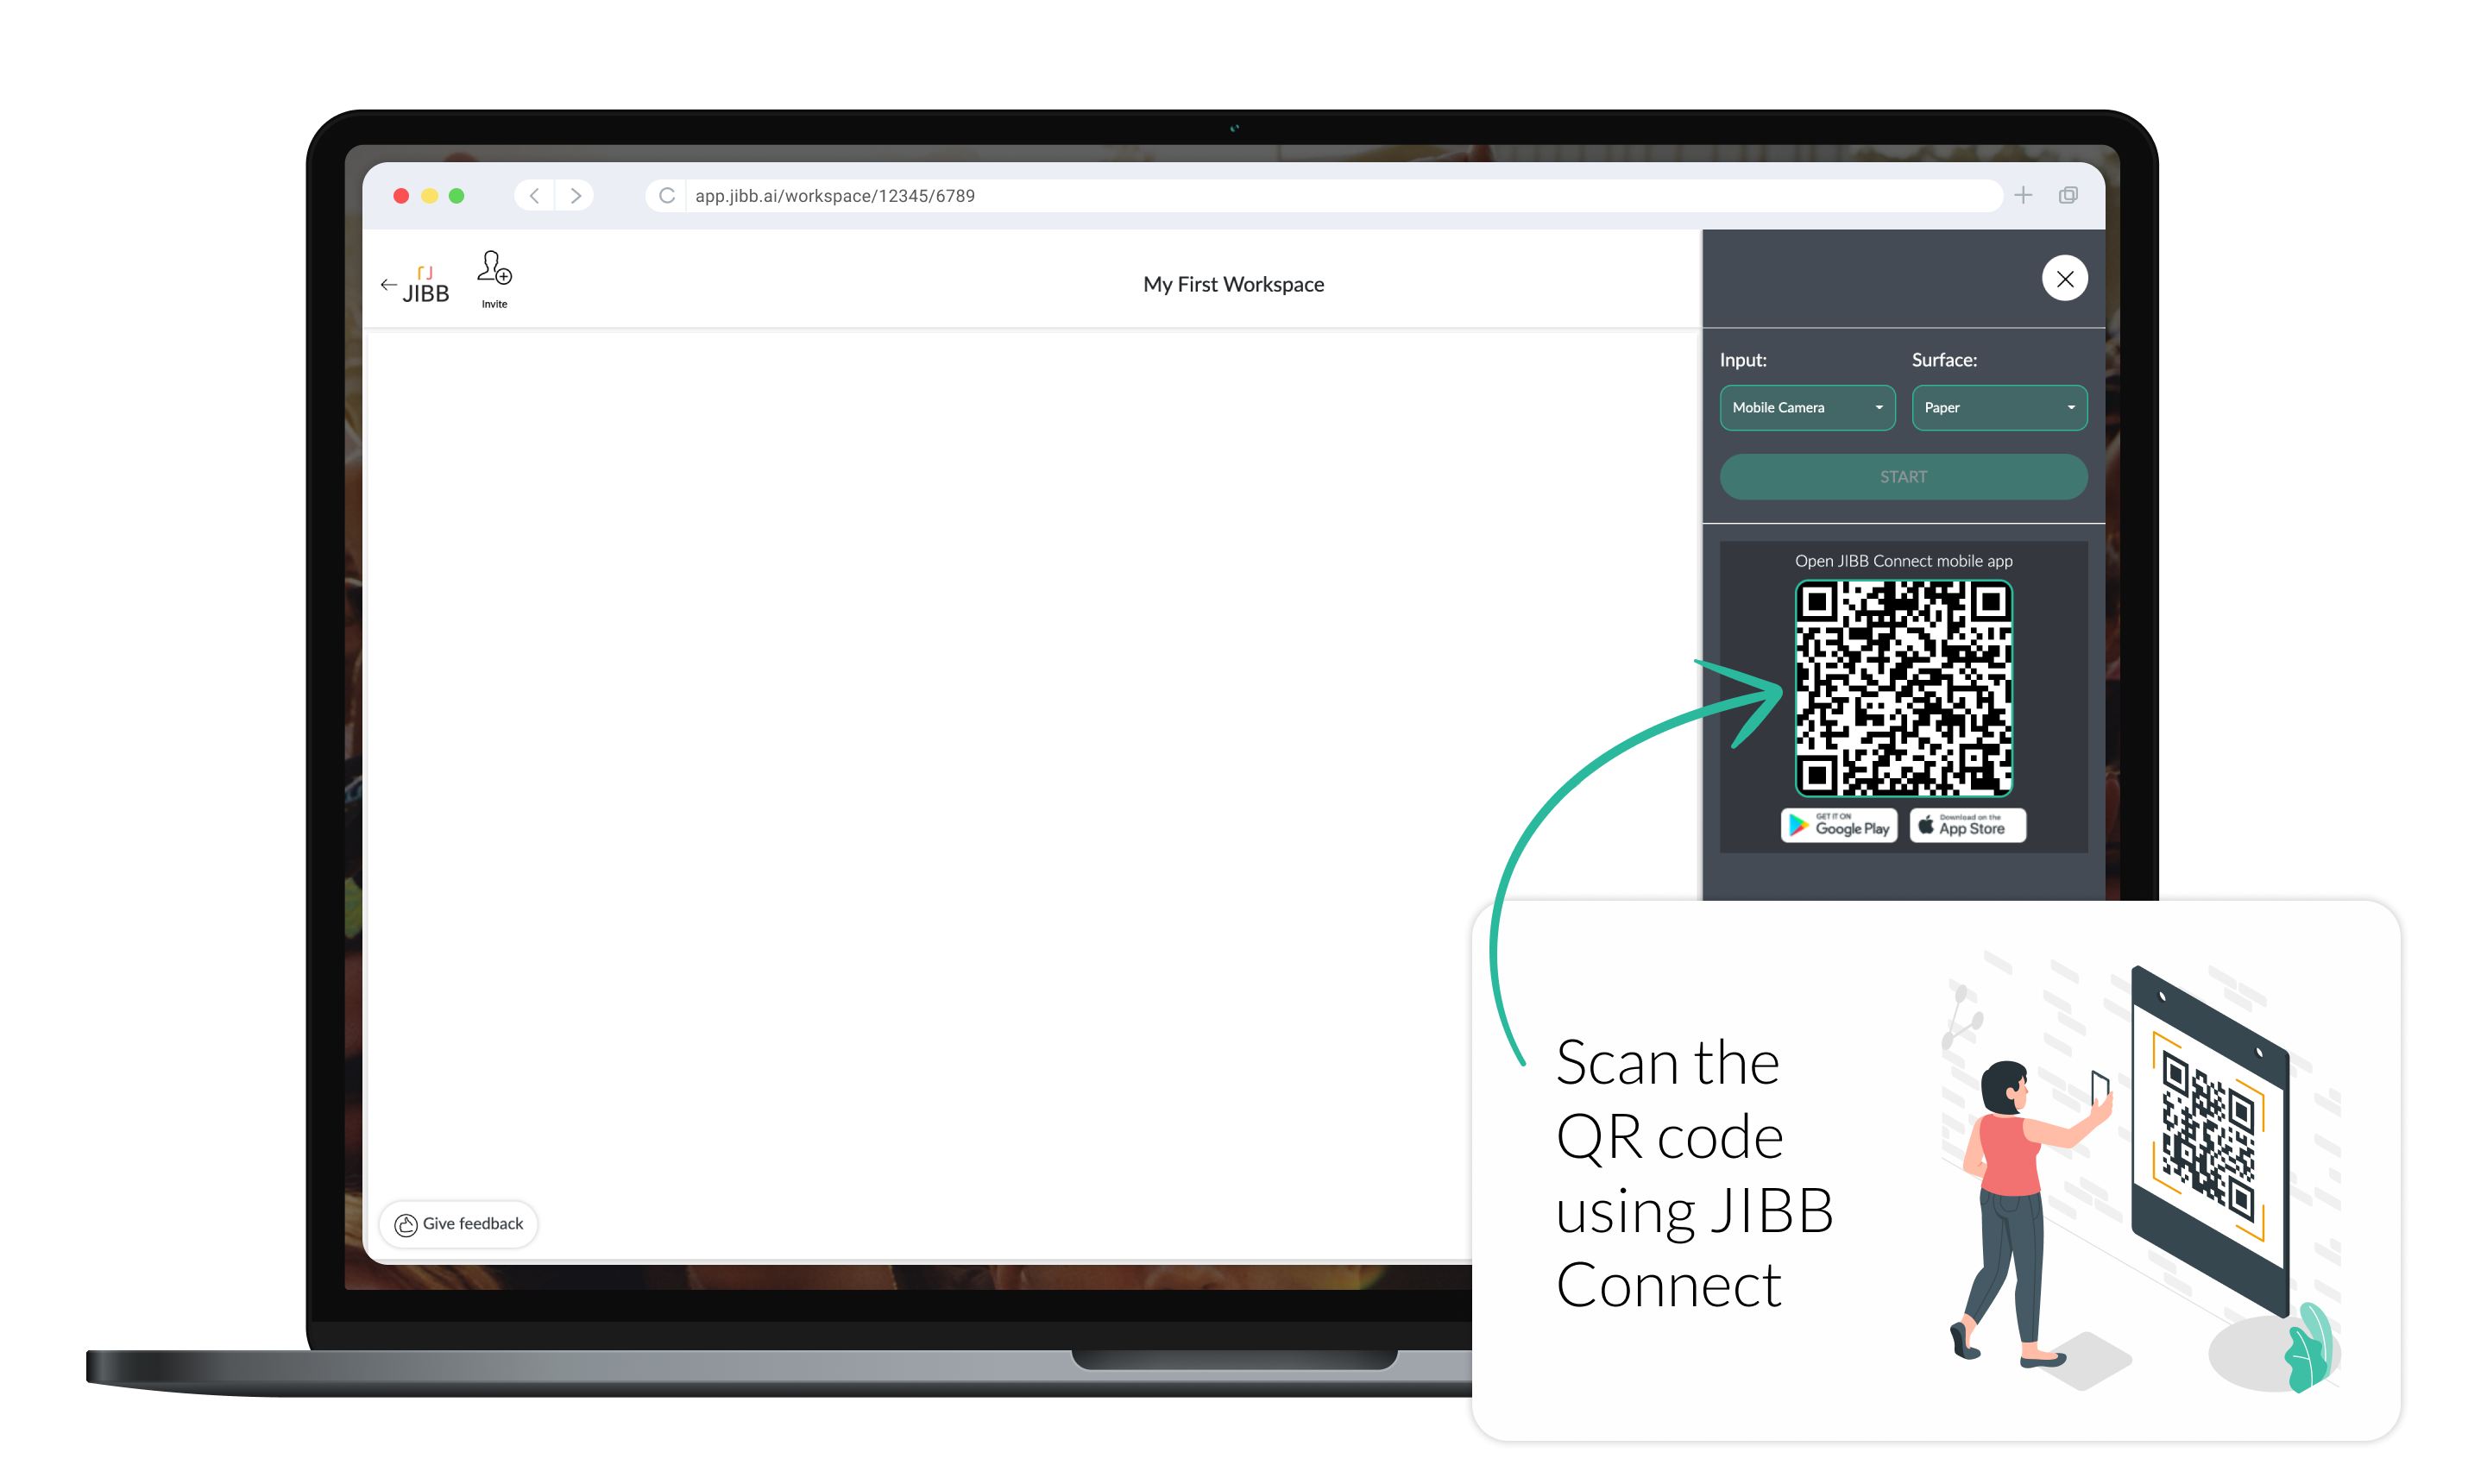 Scanning the QR Code Instructions